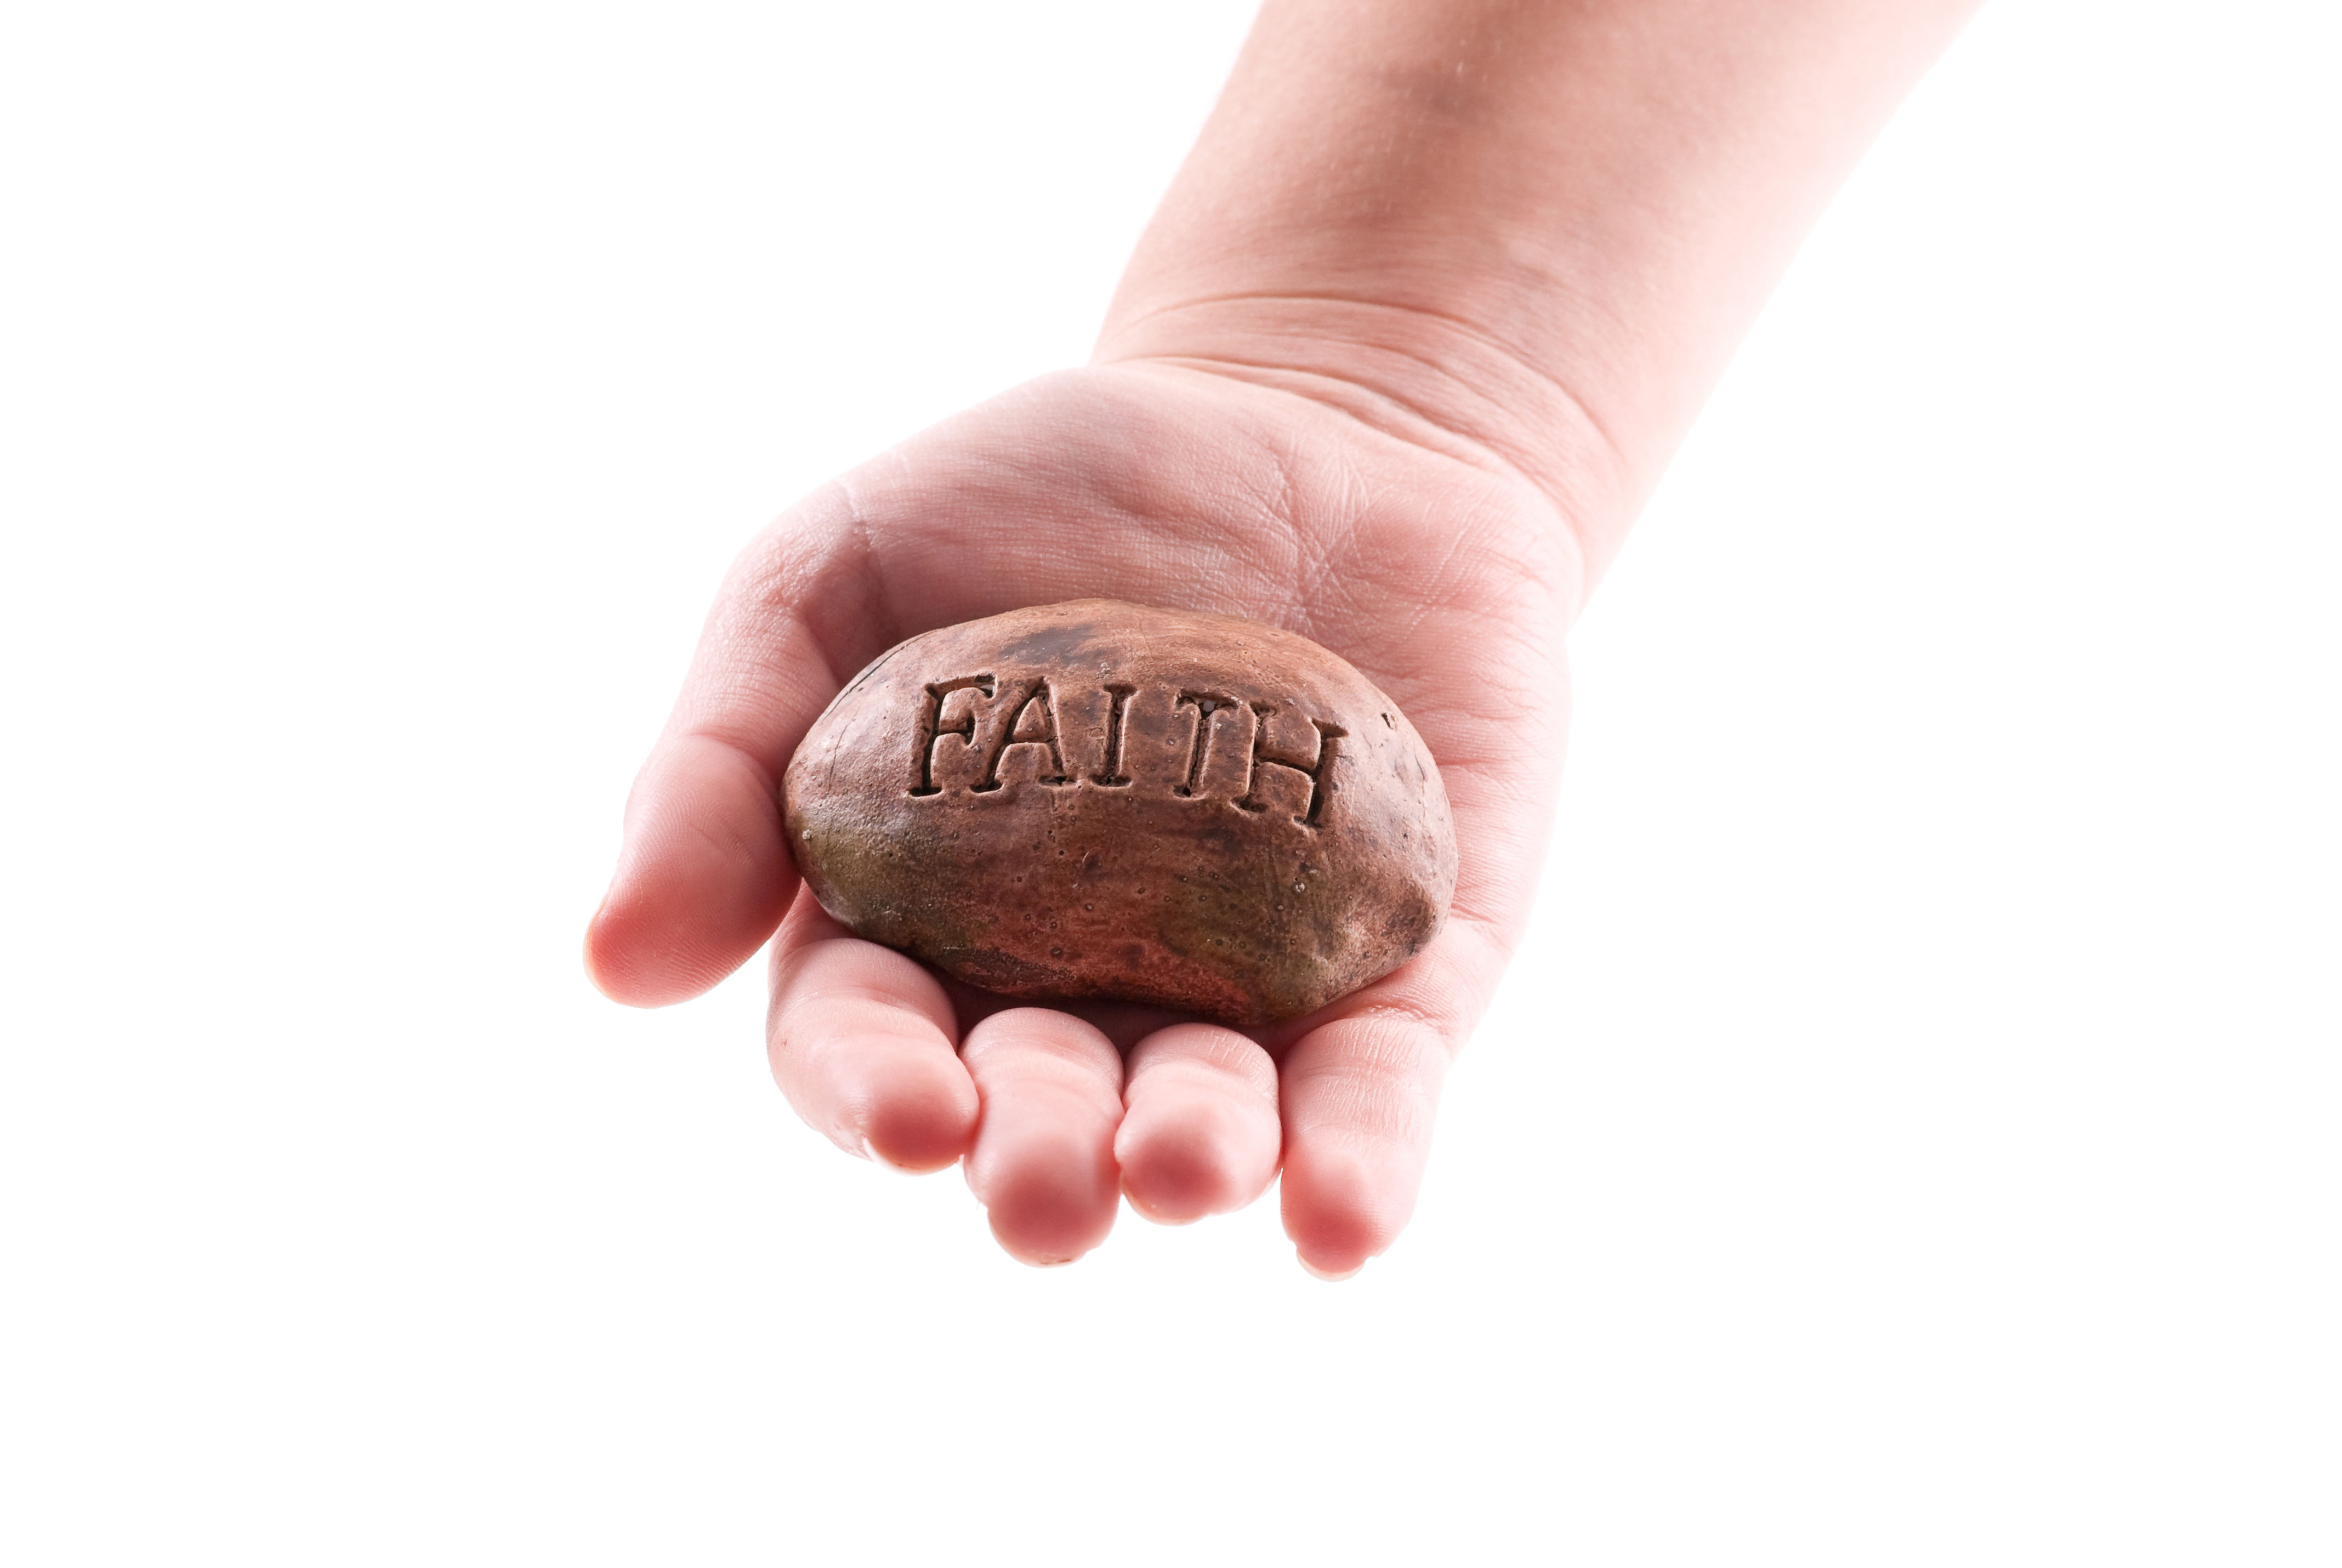 stone written on it faith